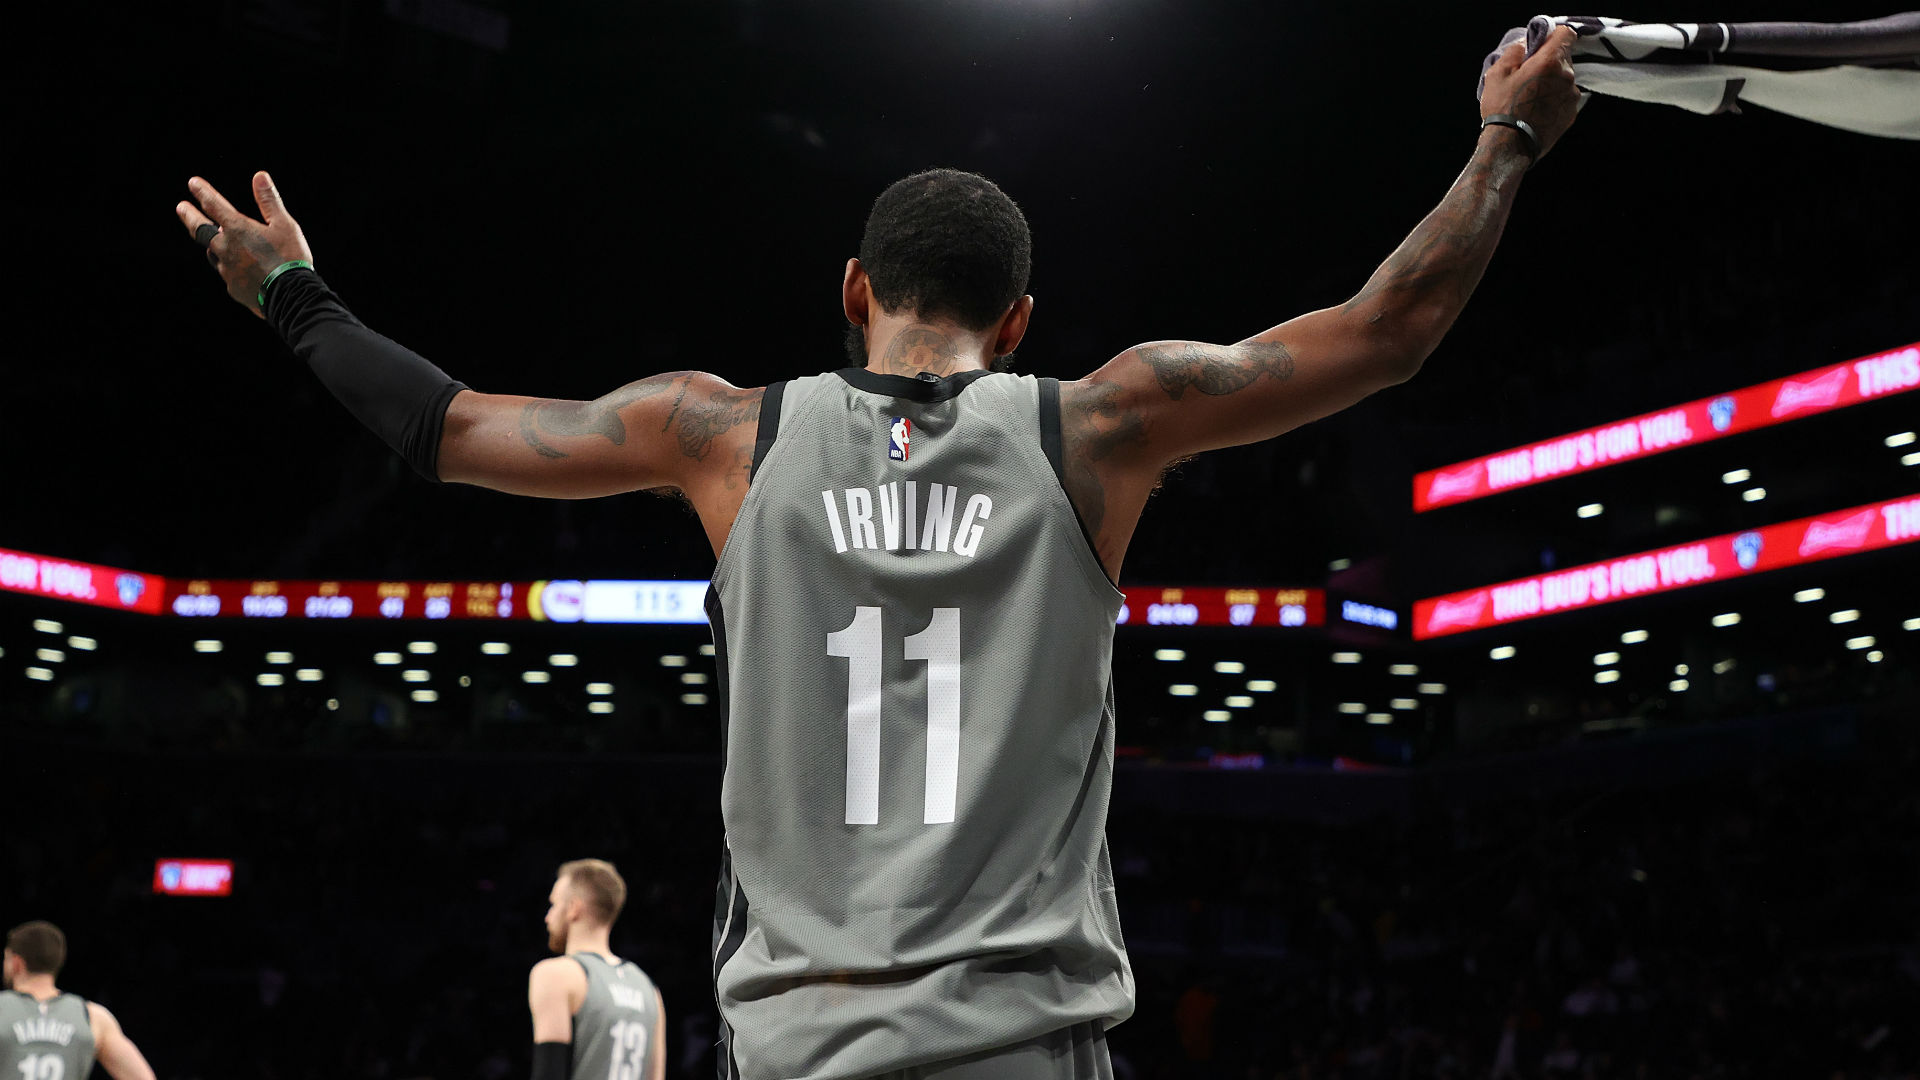 Kyrie Irving uses 'Mamba mentality' to score season-high 54 points for Nets